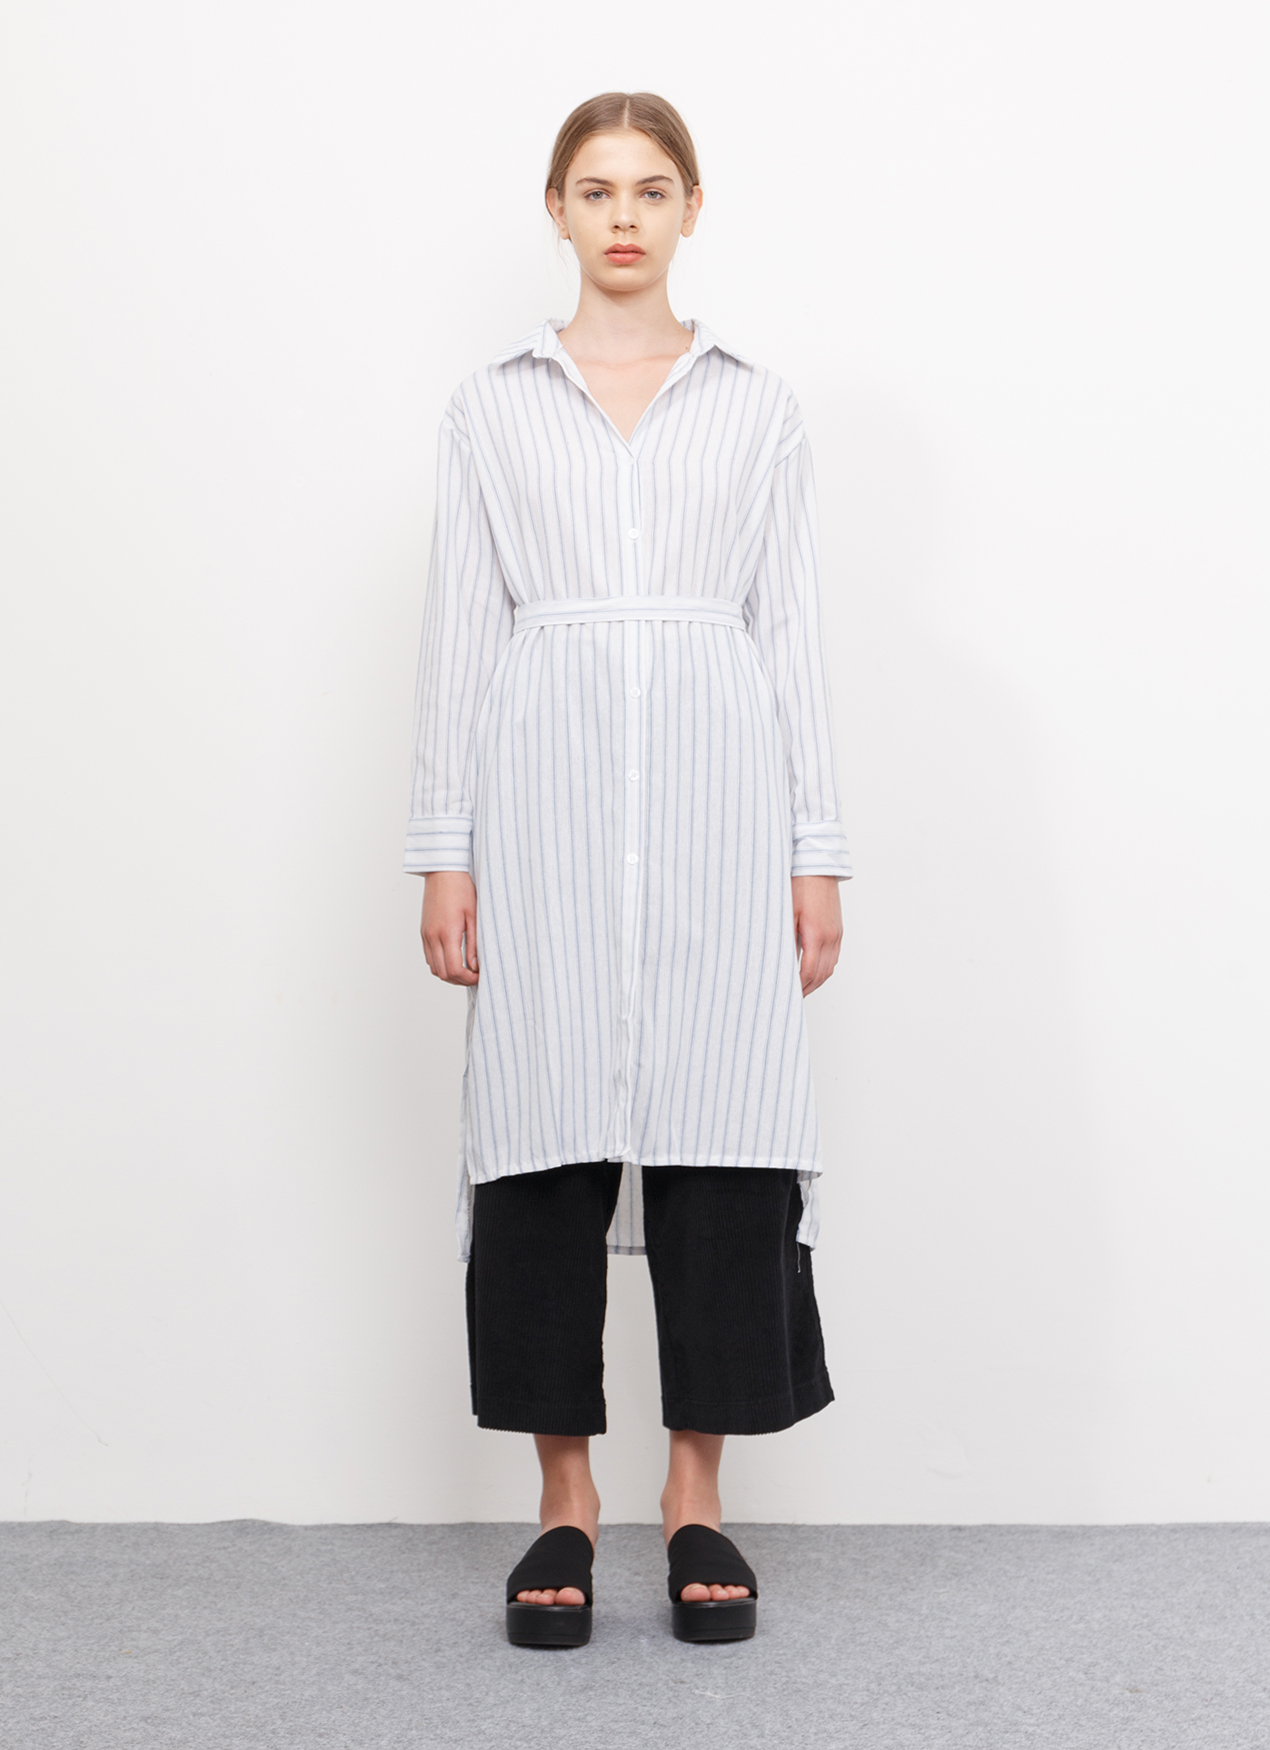 BOWN Cassian Dress - Off White